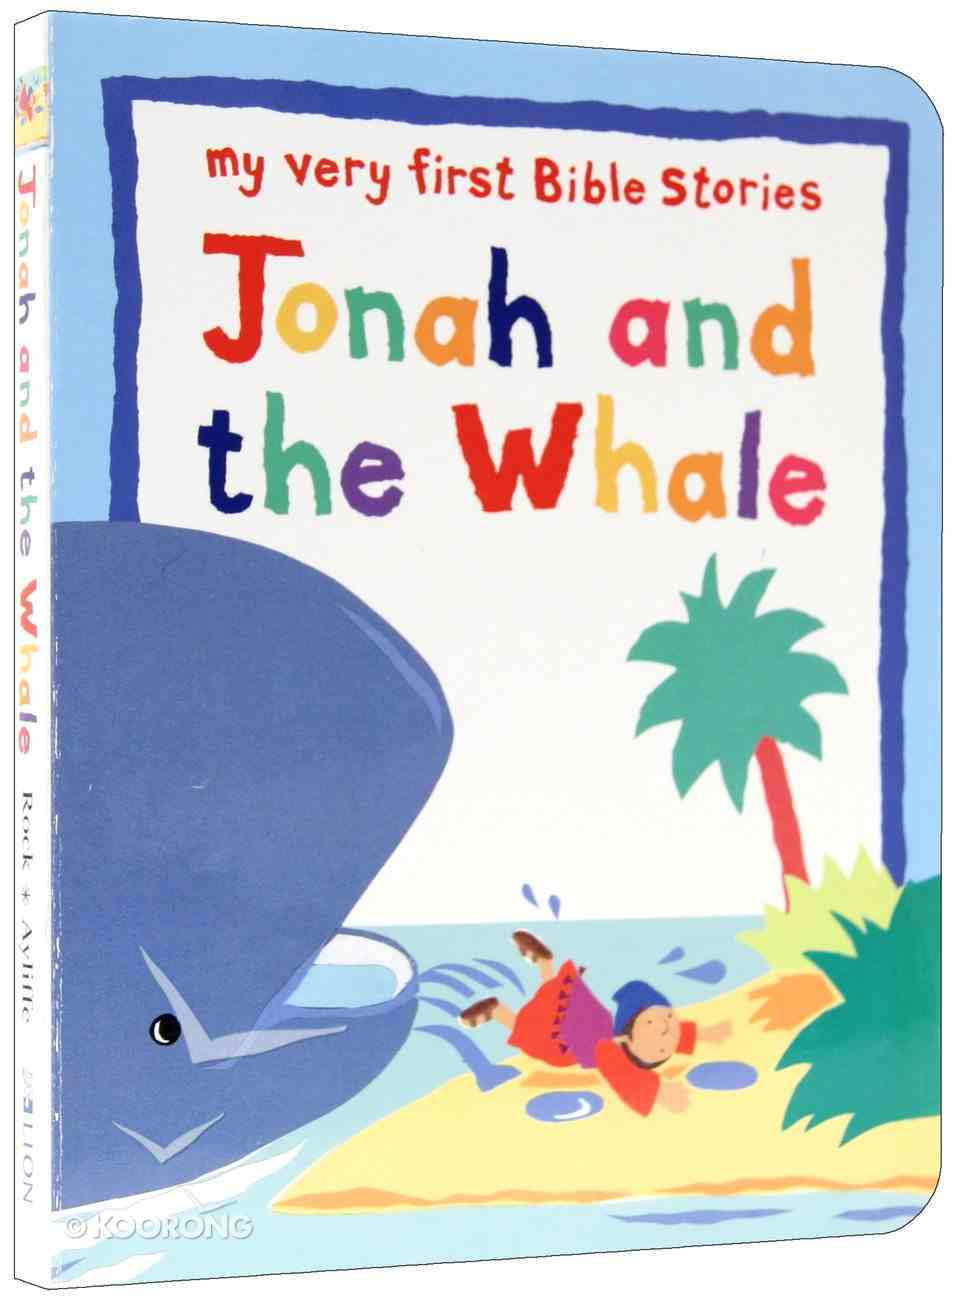 Jonah and the Whale (My Very First Bible Stories Series) Board Book